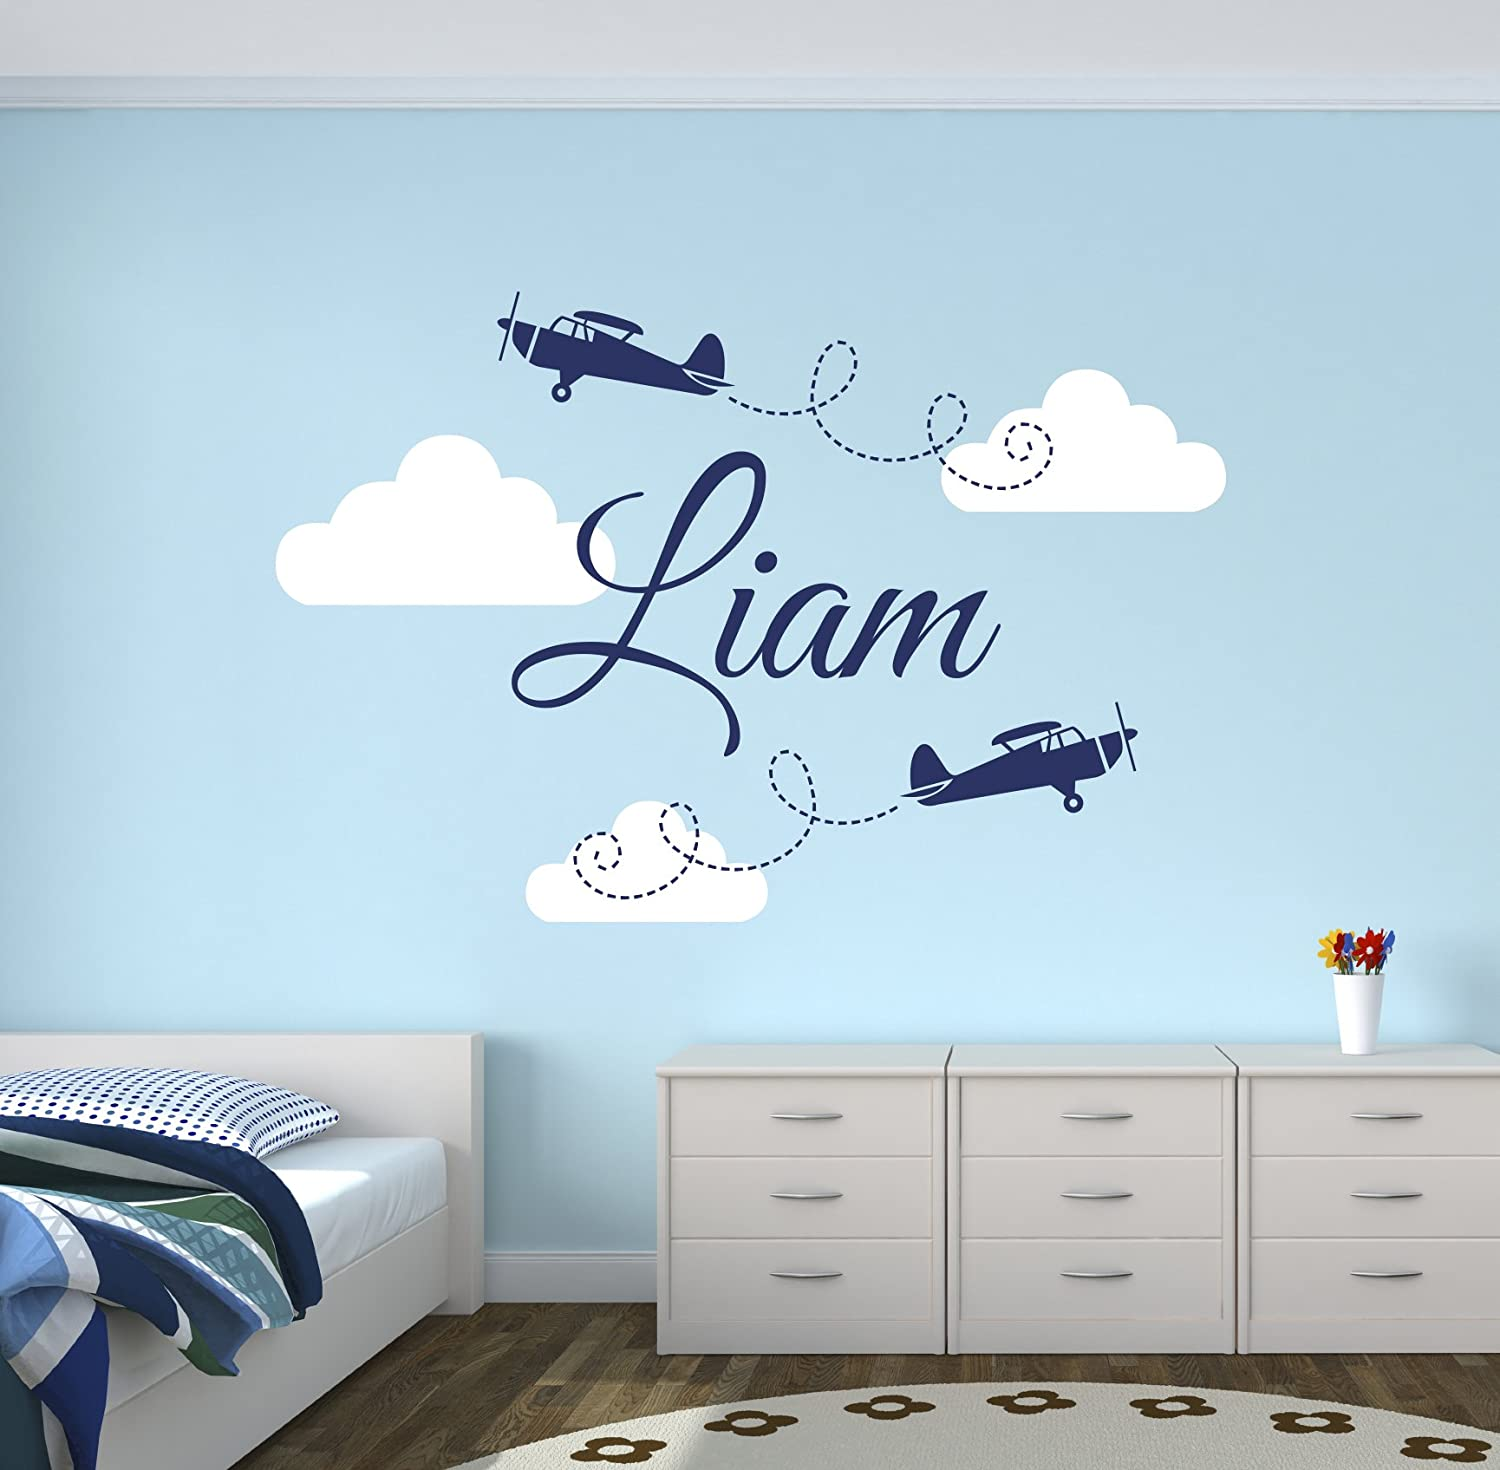 Custom Airplanes Name Wall Decal - Baby Boy Room Decor - Nursery Wall Decals - Airplanes Clouds Wall Decal Vinyl Sticker for Boys